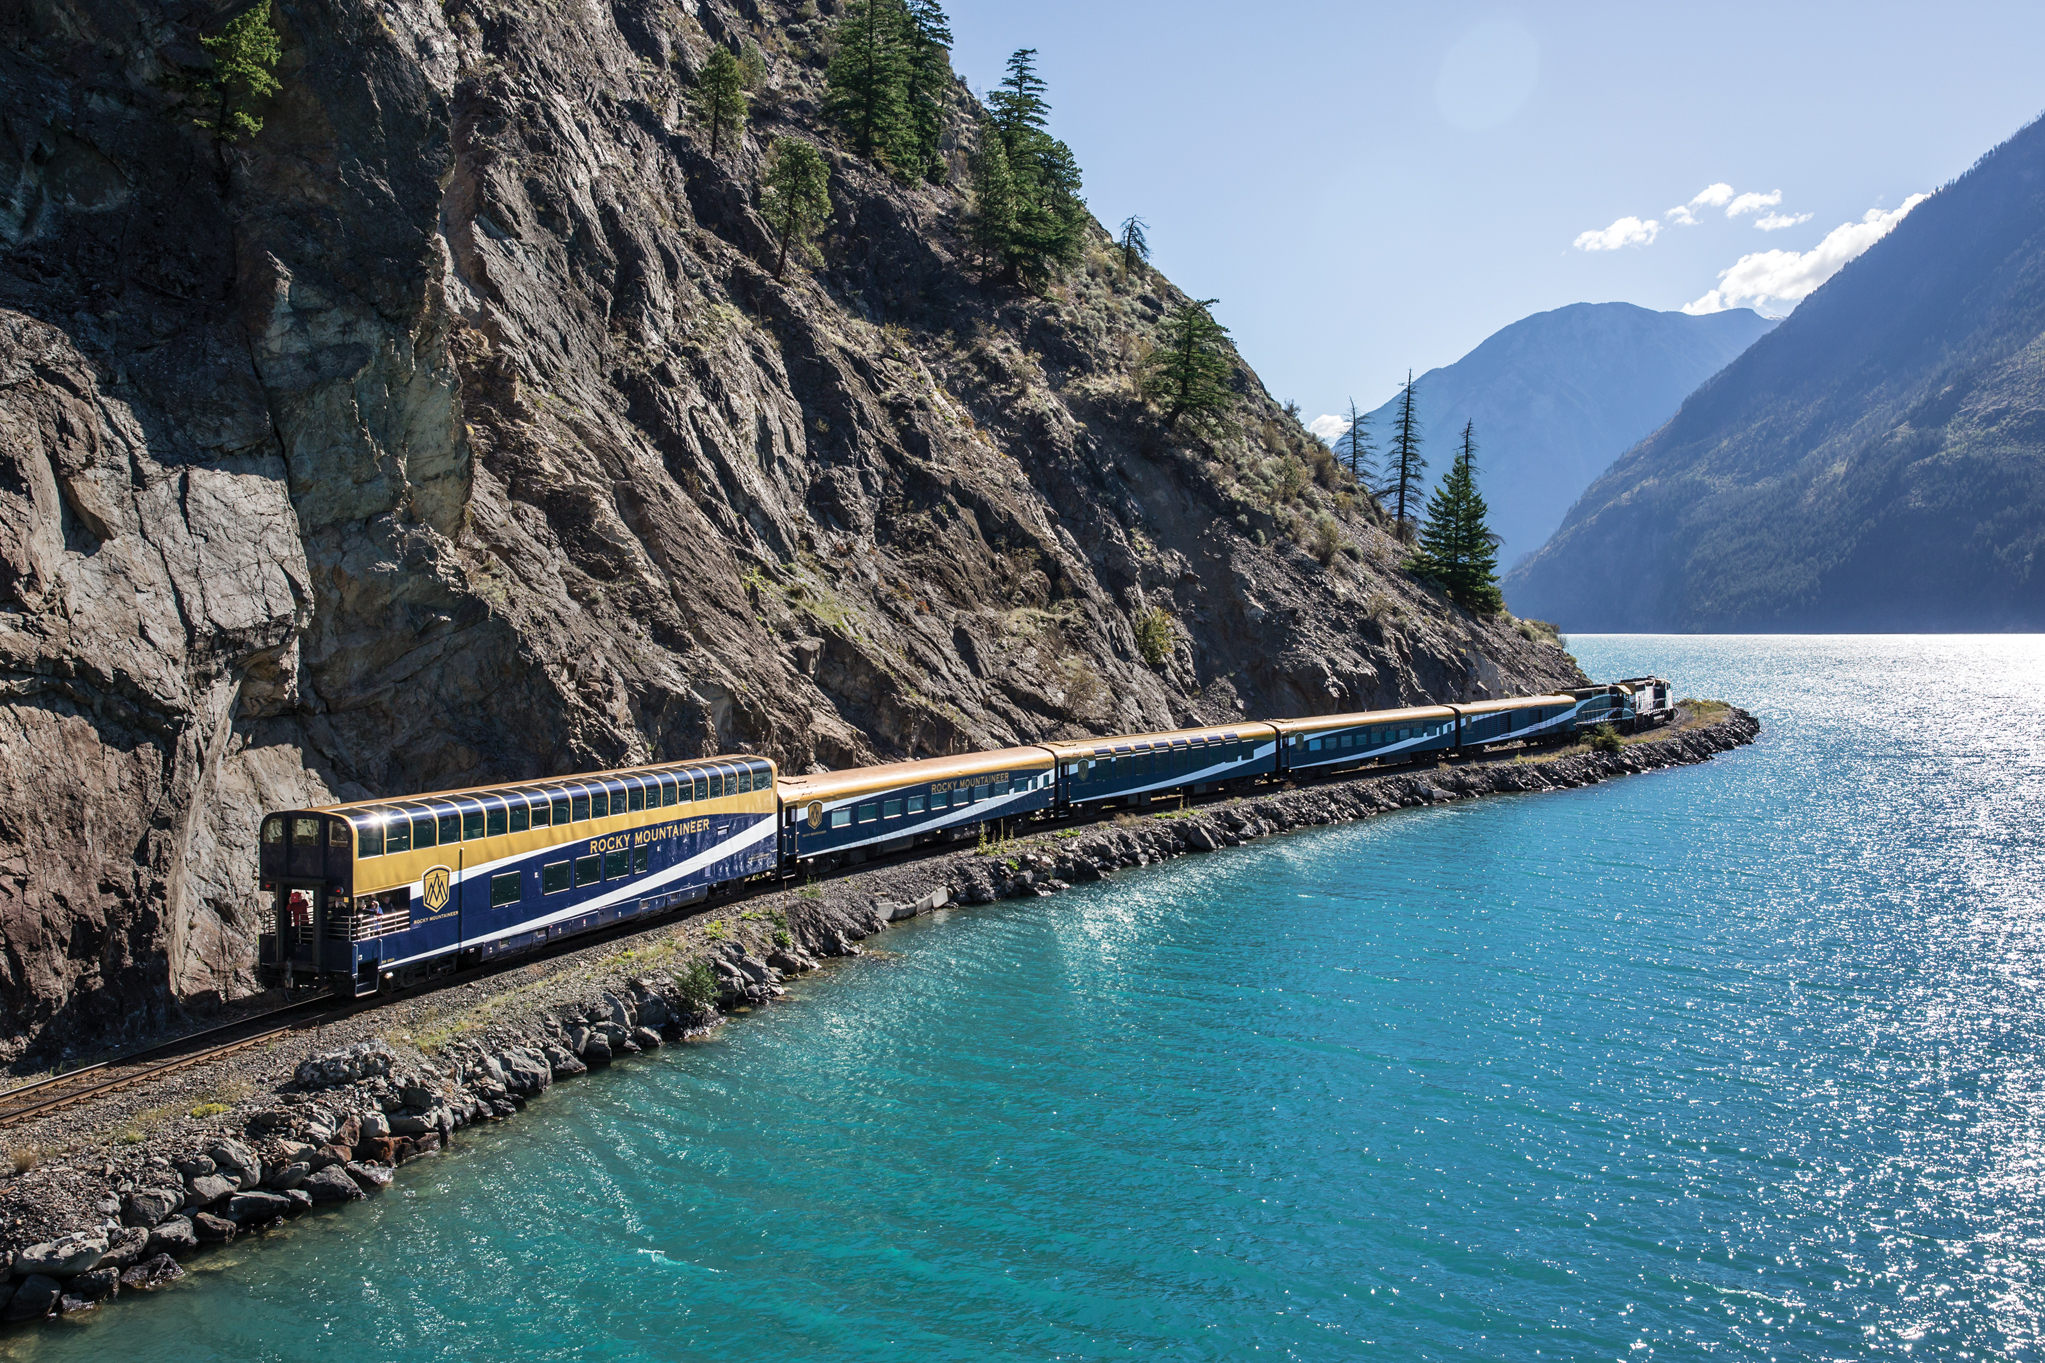 Rocky Mountaineer view by the lake